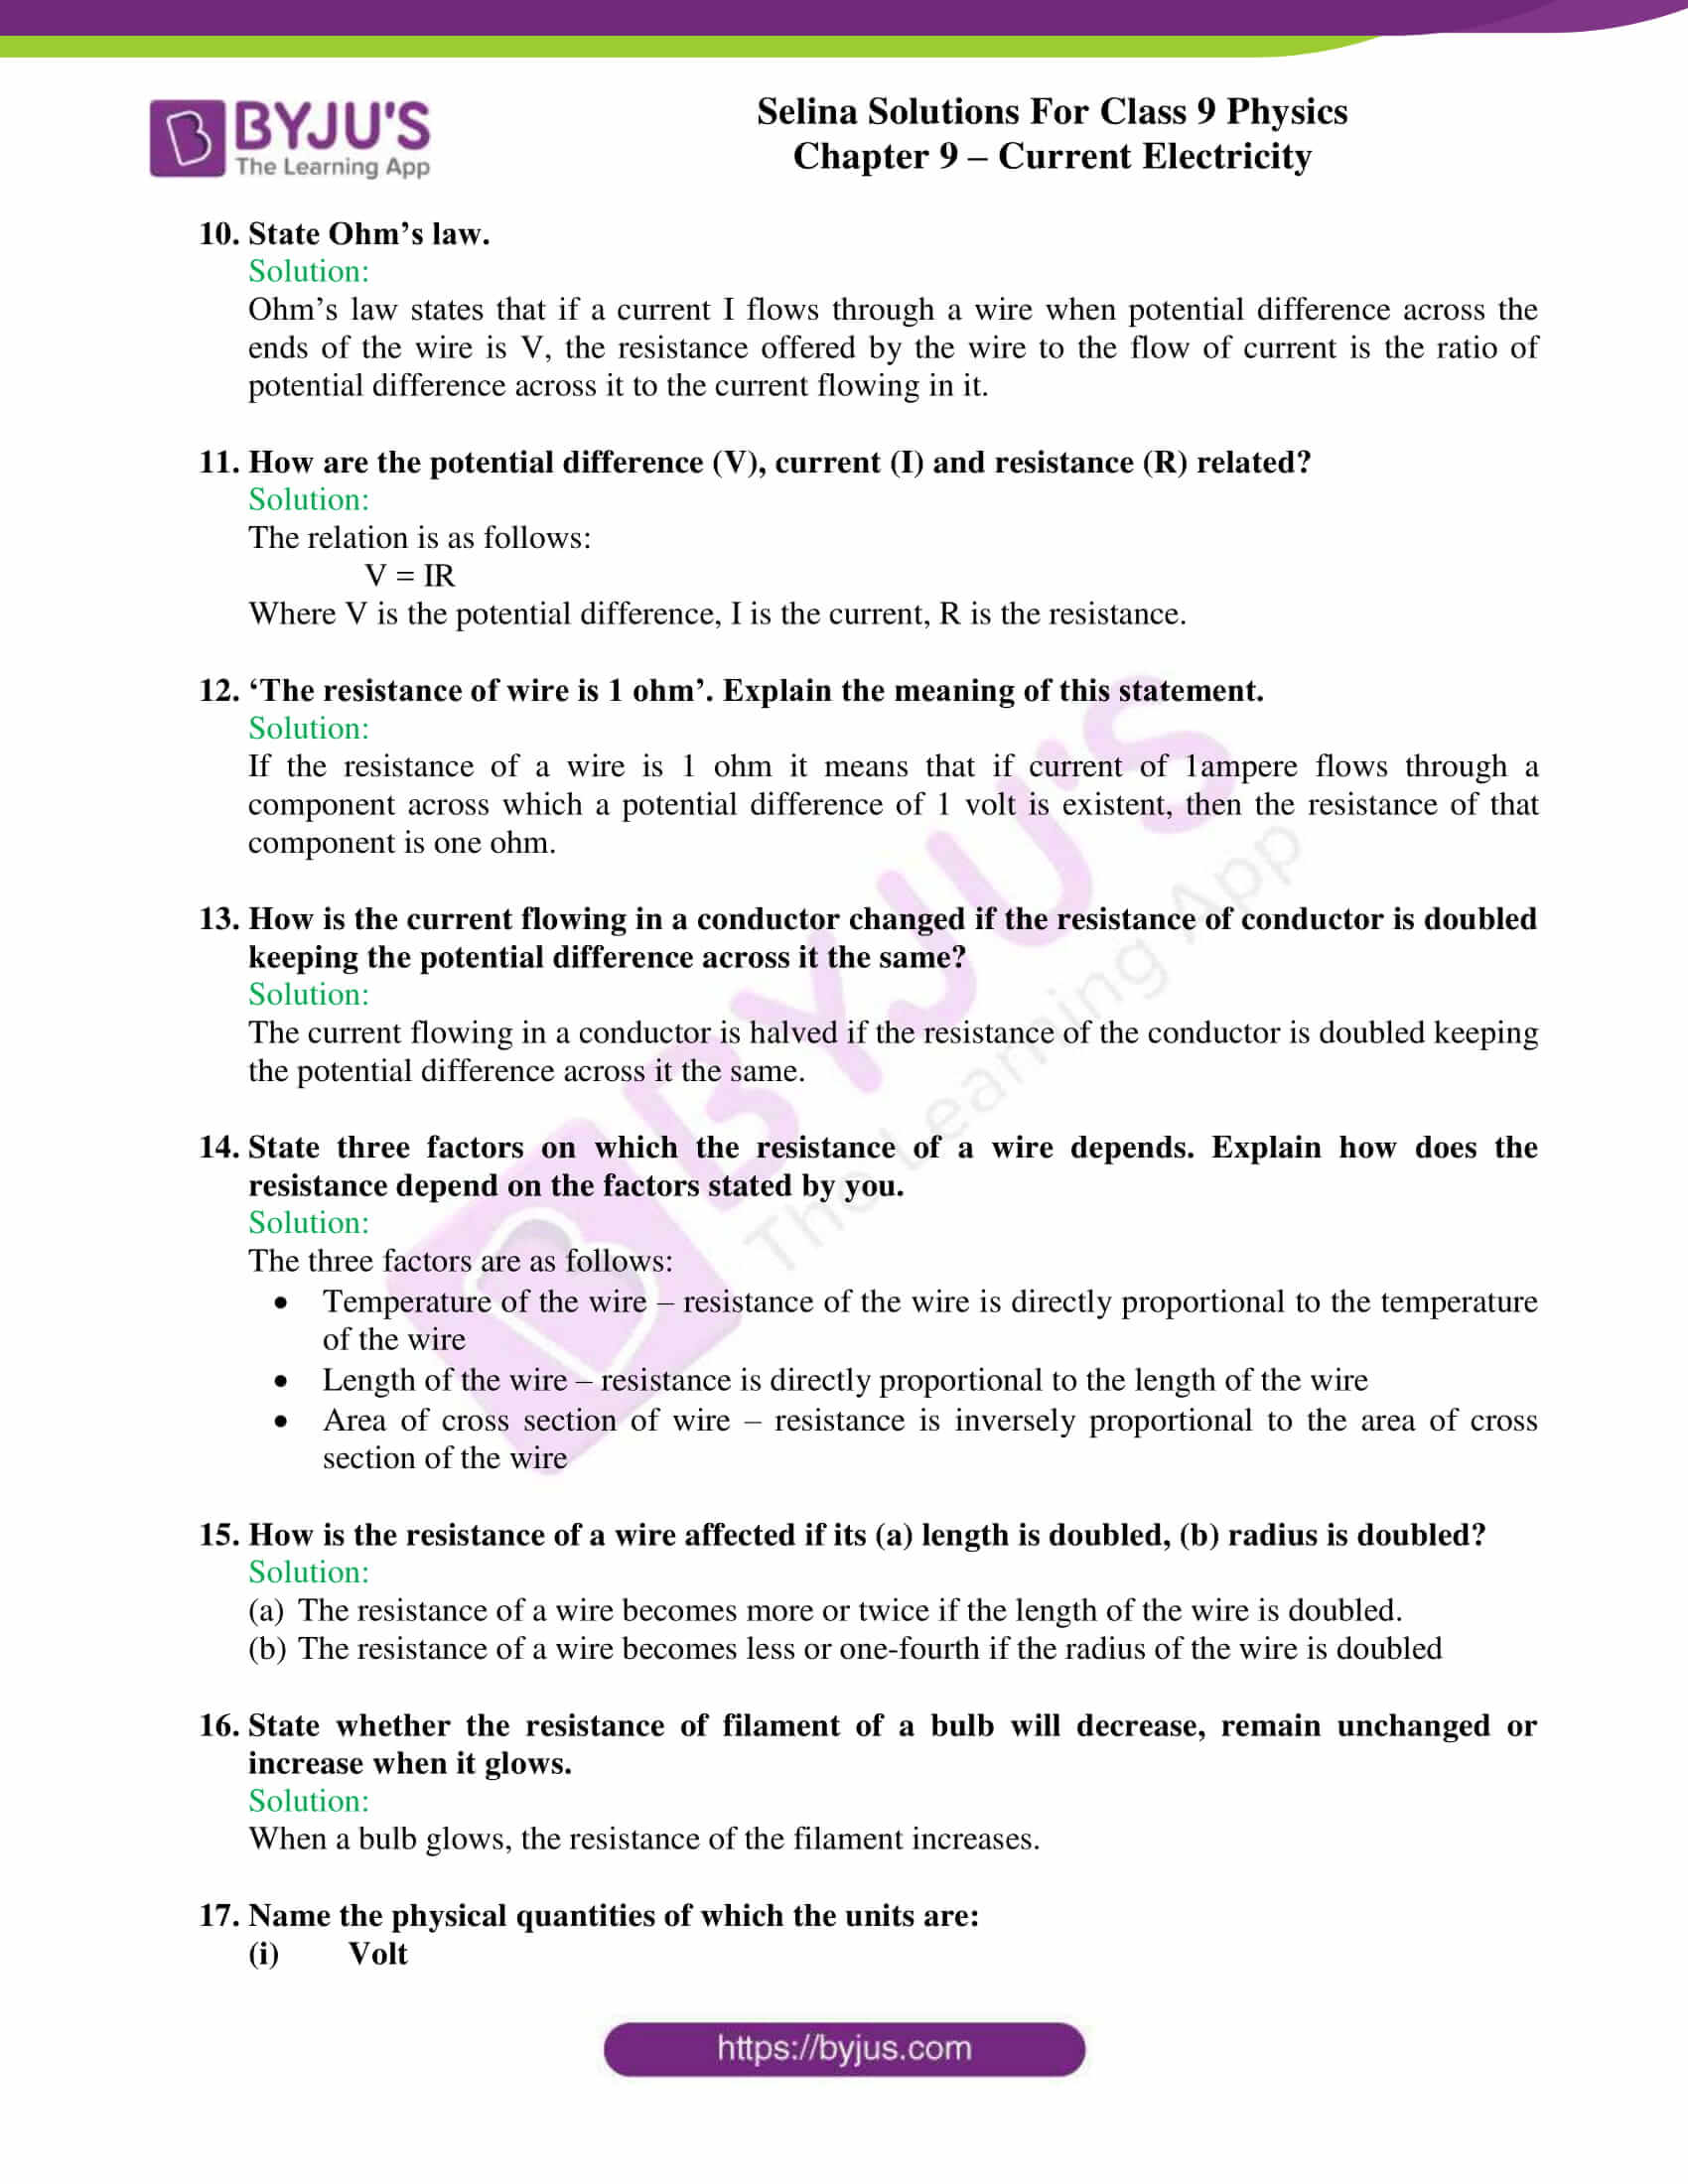 selina solutions class 9 physics chapter 9 Current Electricity part 11